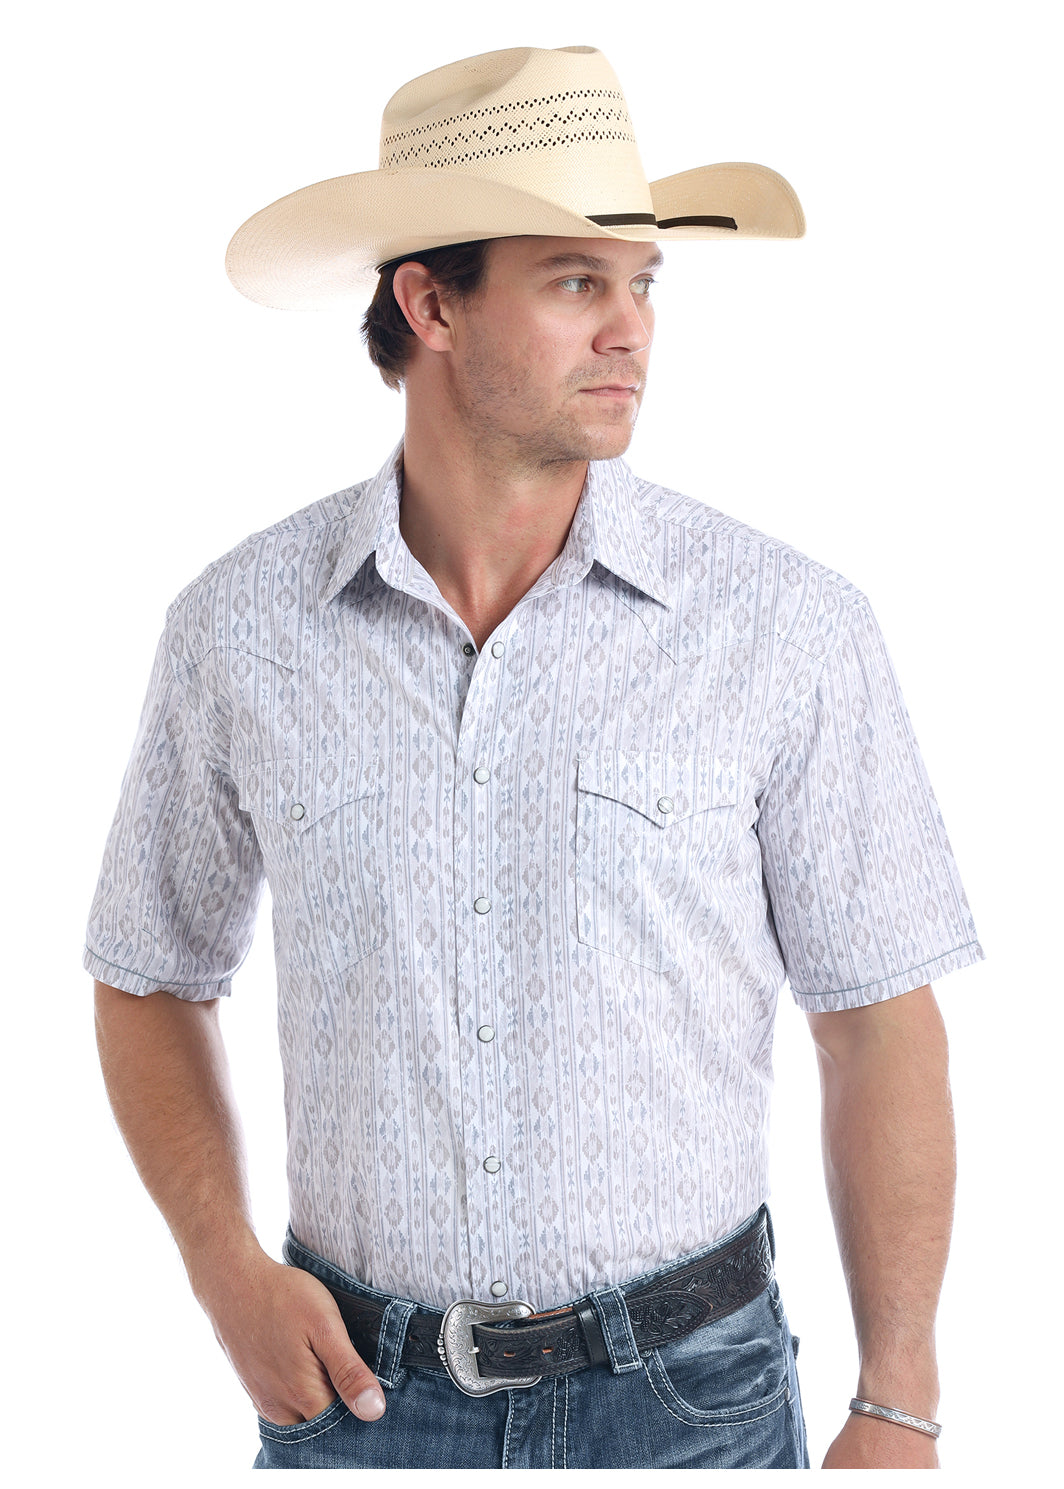 0be8ada8c341 Newest Products Page 11 - Lazy J Ranch Wear